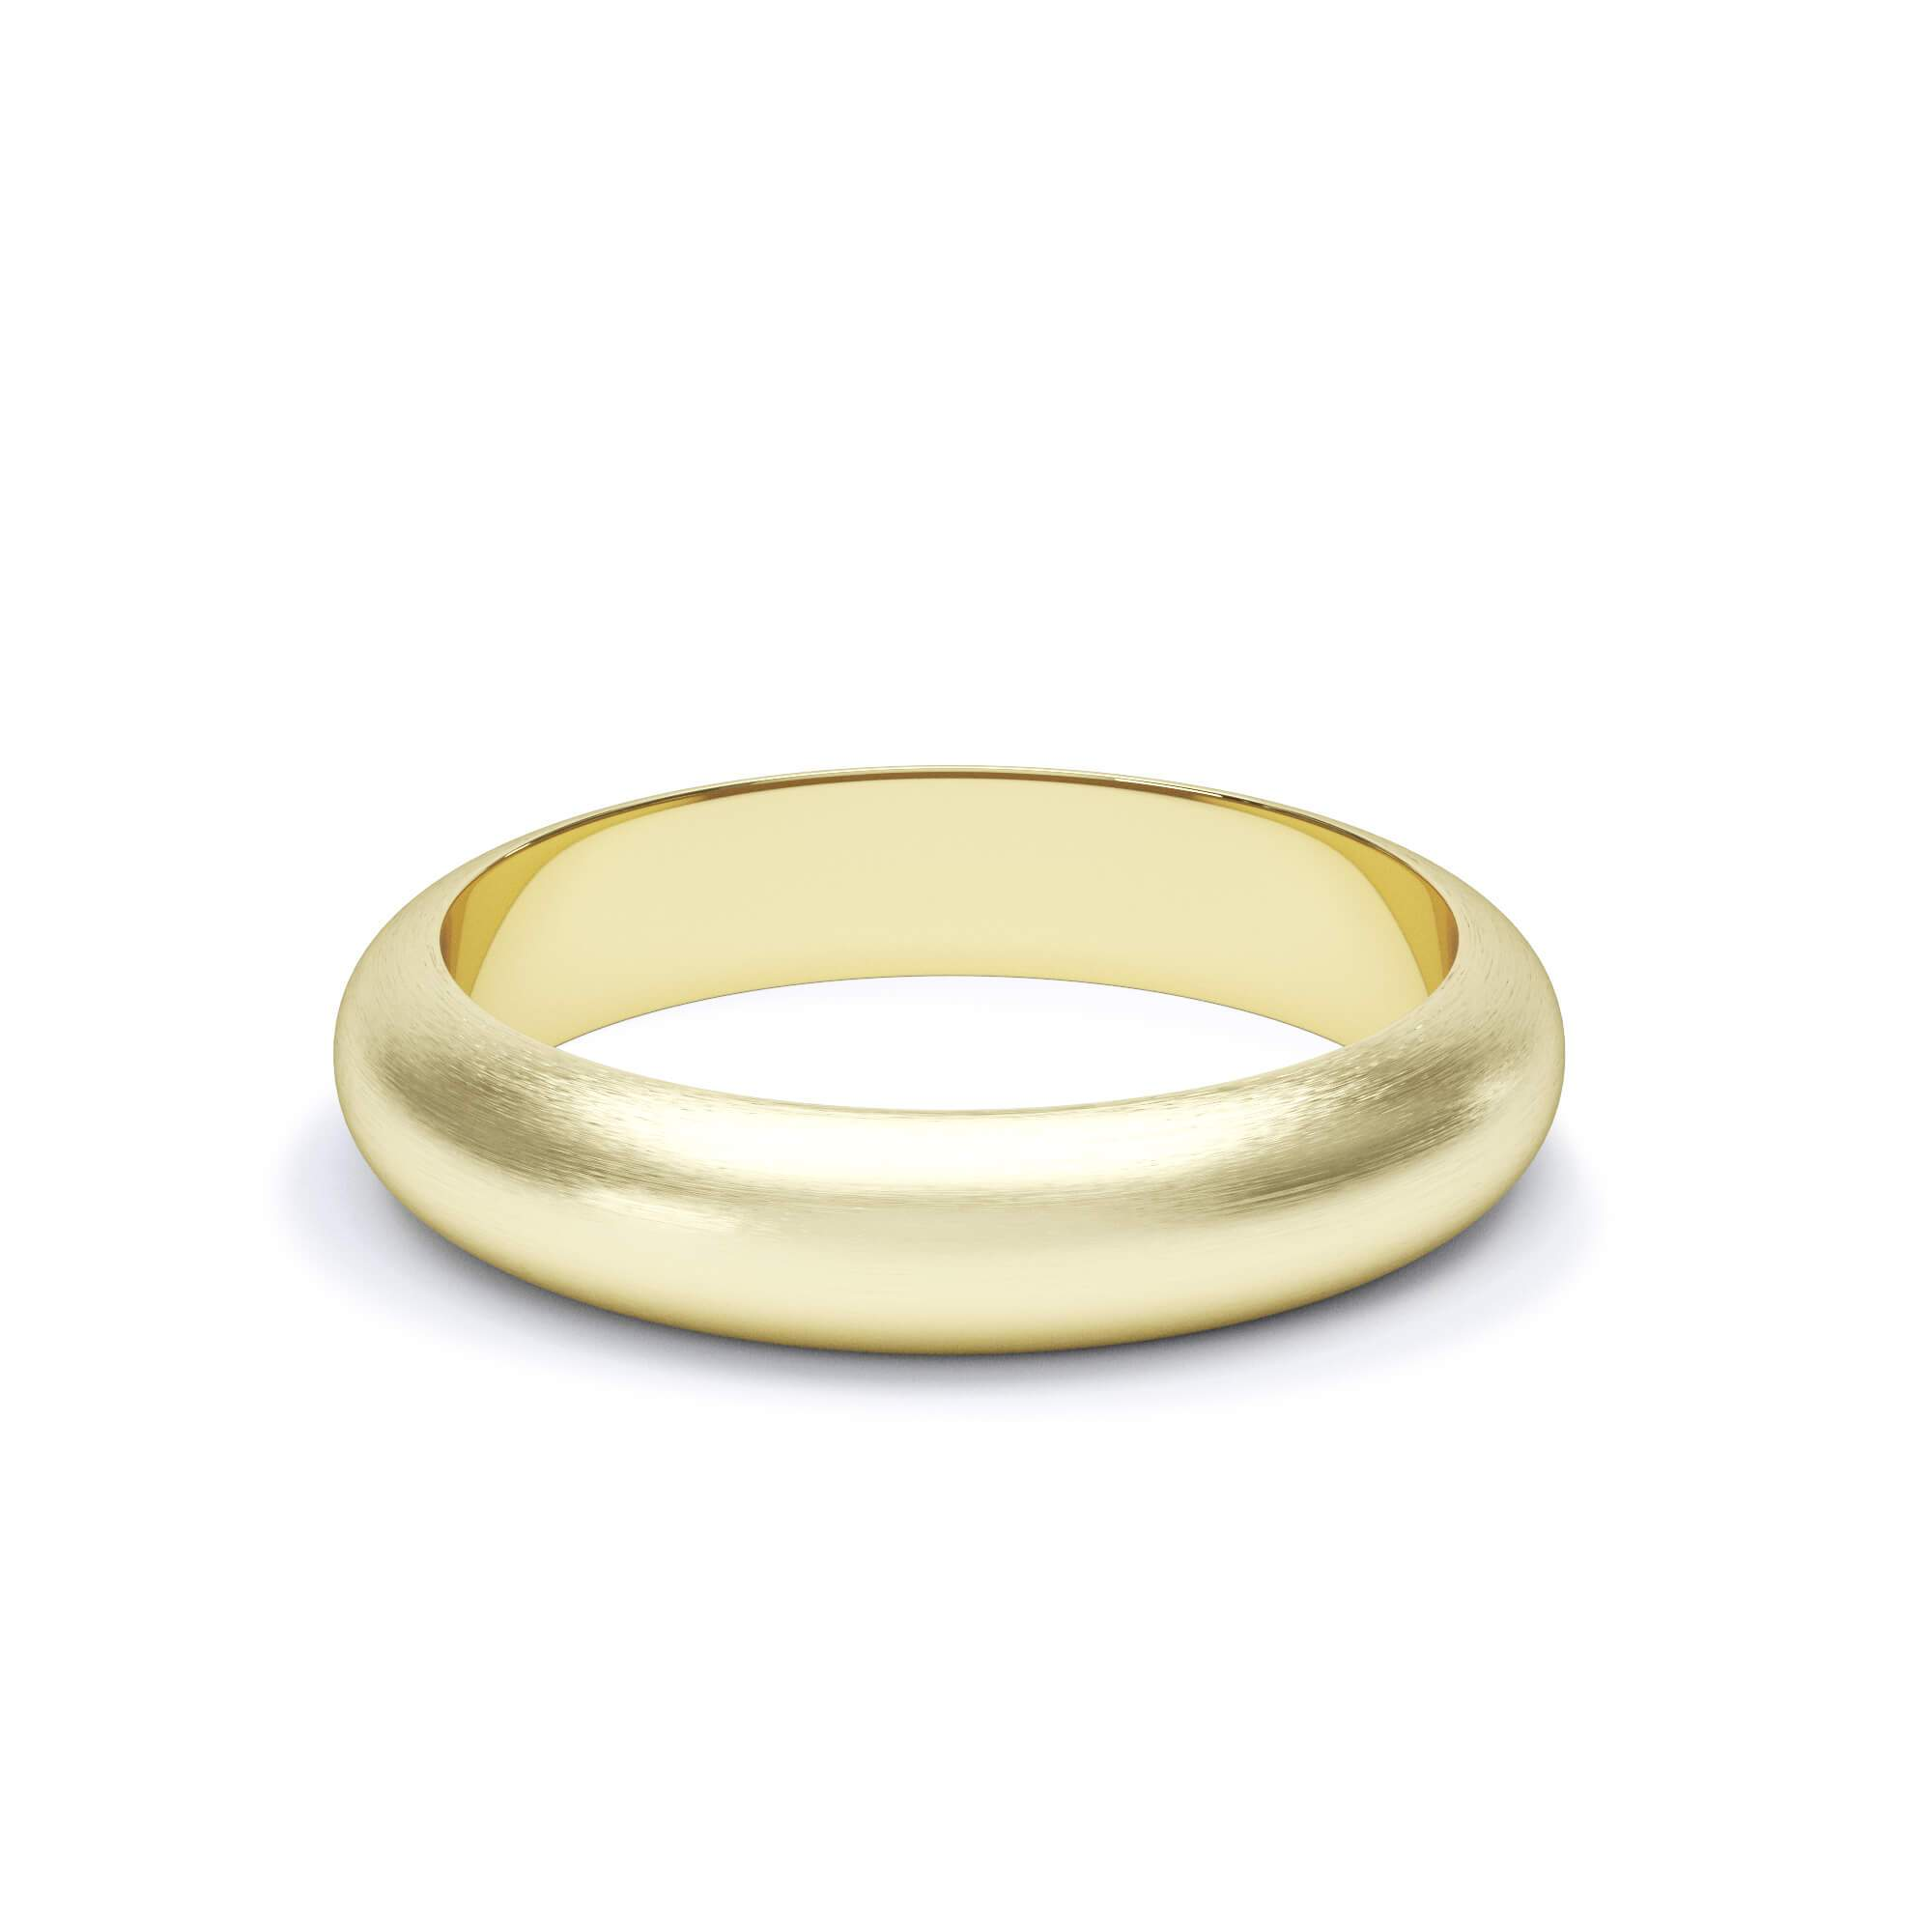 Lily Arkwright Wedding Bands 4.0mm / 18K Yellow Gold Satin Polish Satin Polish Plain Wedding Band D Shape Profile 18k Yellow Gold